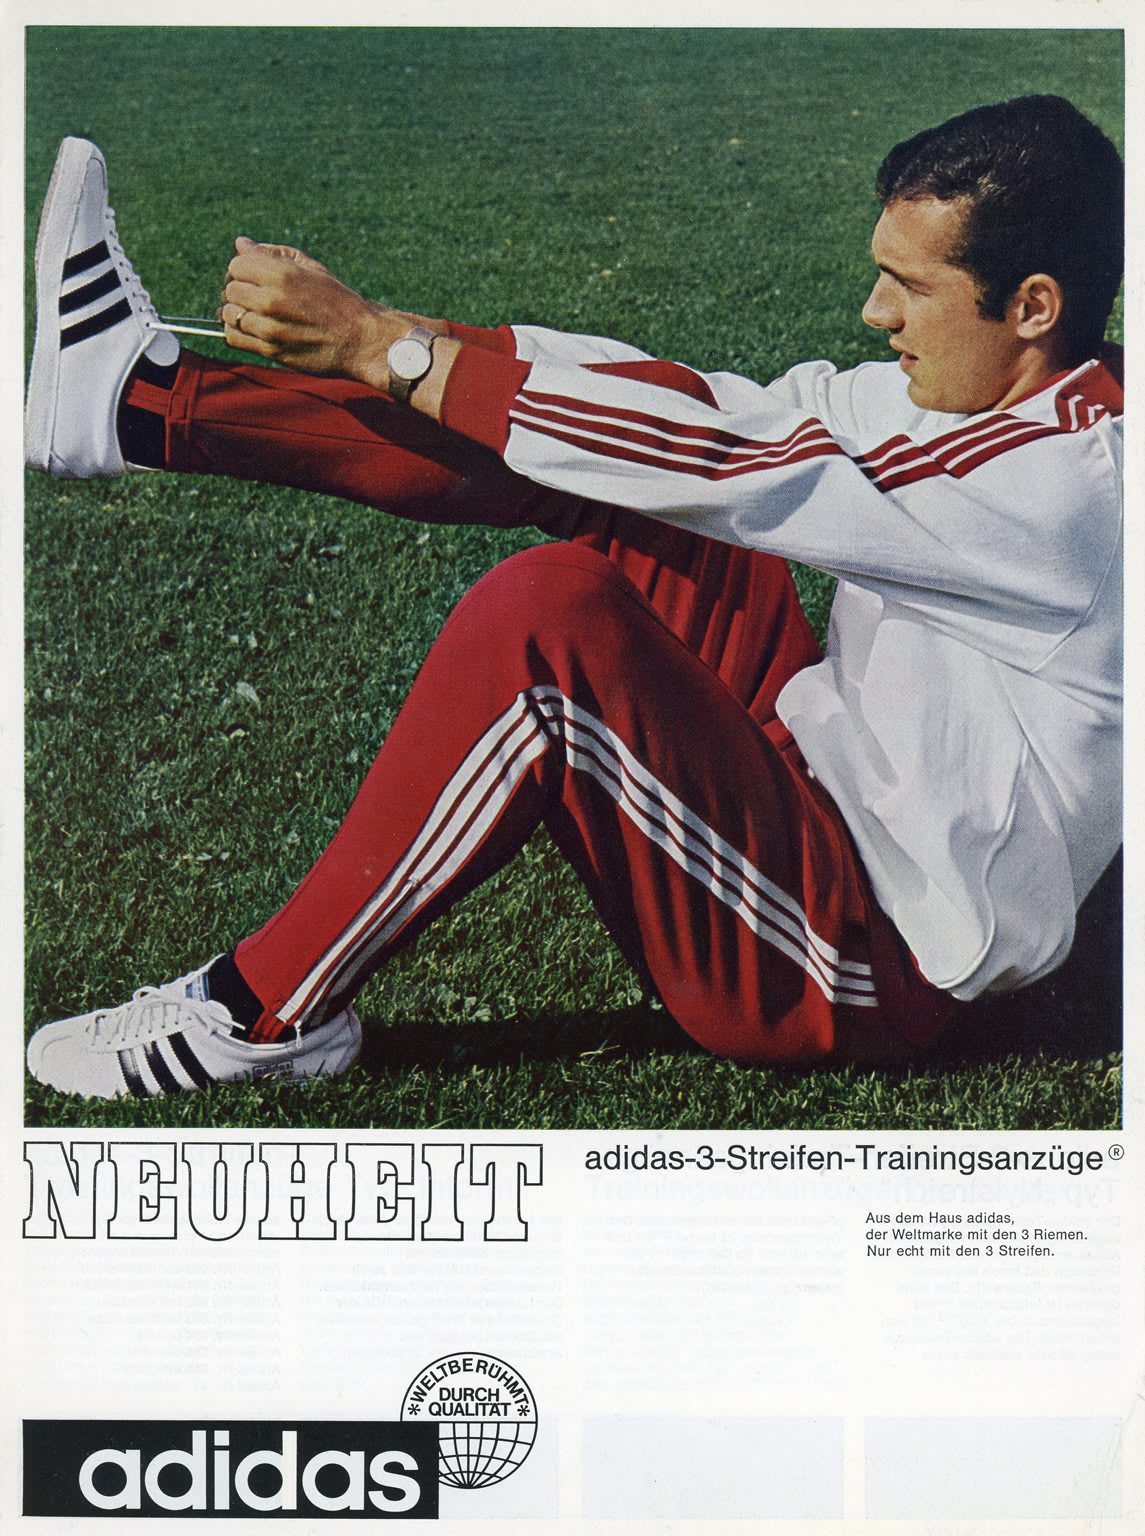 Man wearing white and red tracksuit lacing up sneakers, Franz, Beckenbauer, footballer, football, adidas, tracksuit